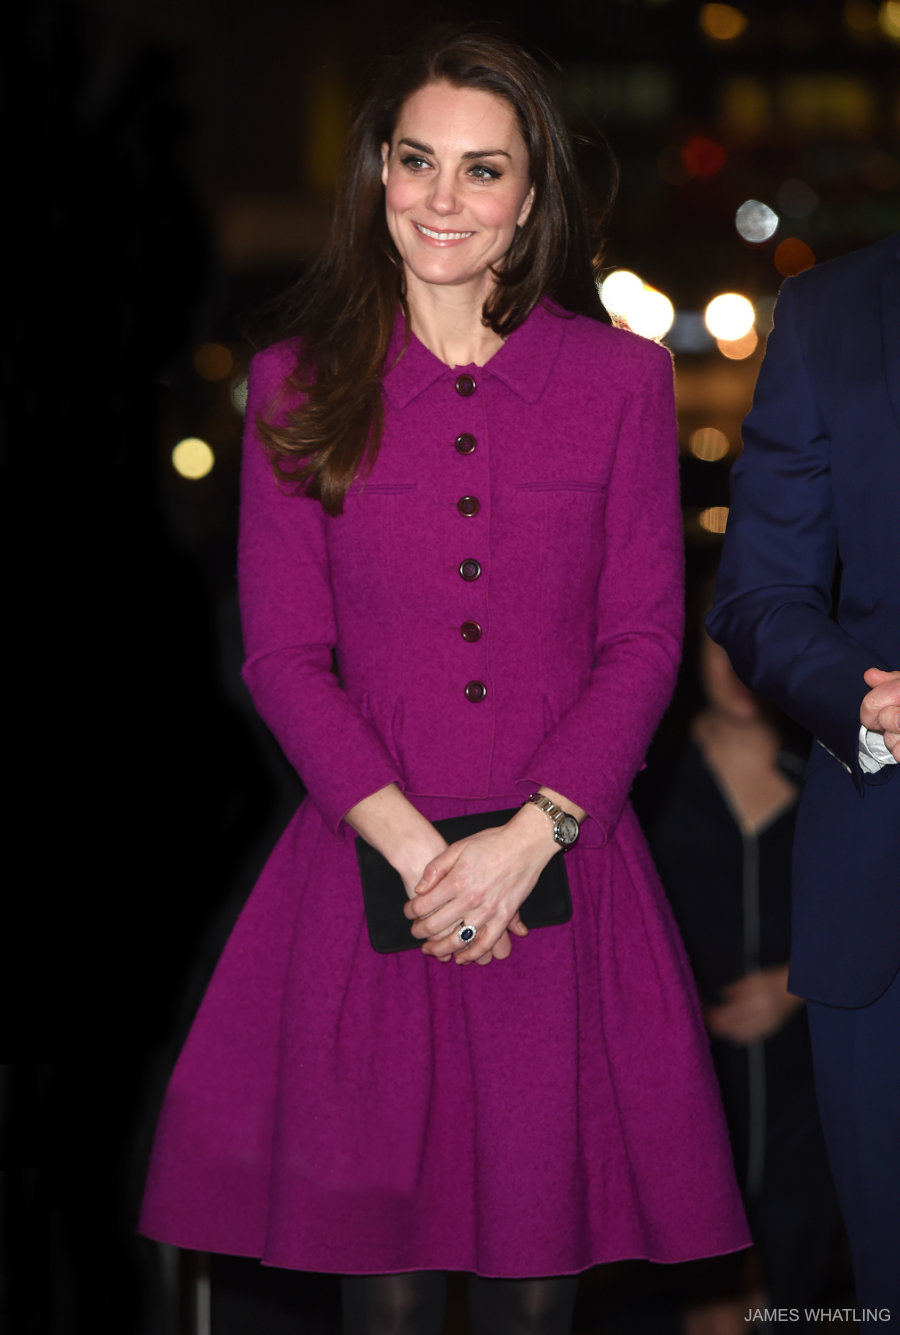 Kate Middleton wearing Oscar de la Renta